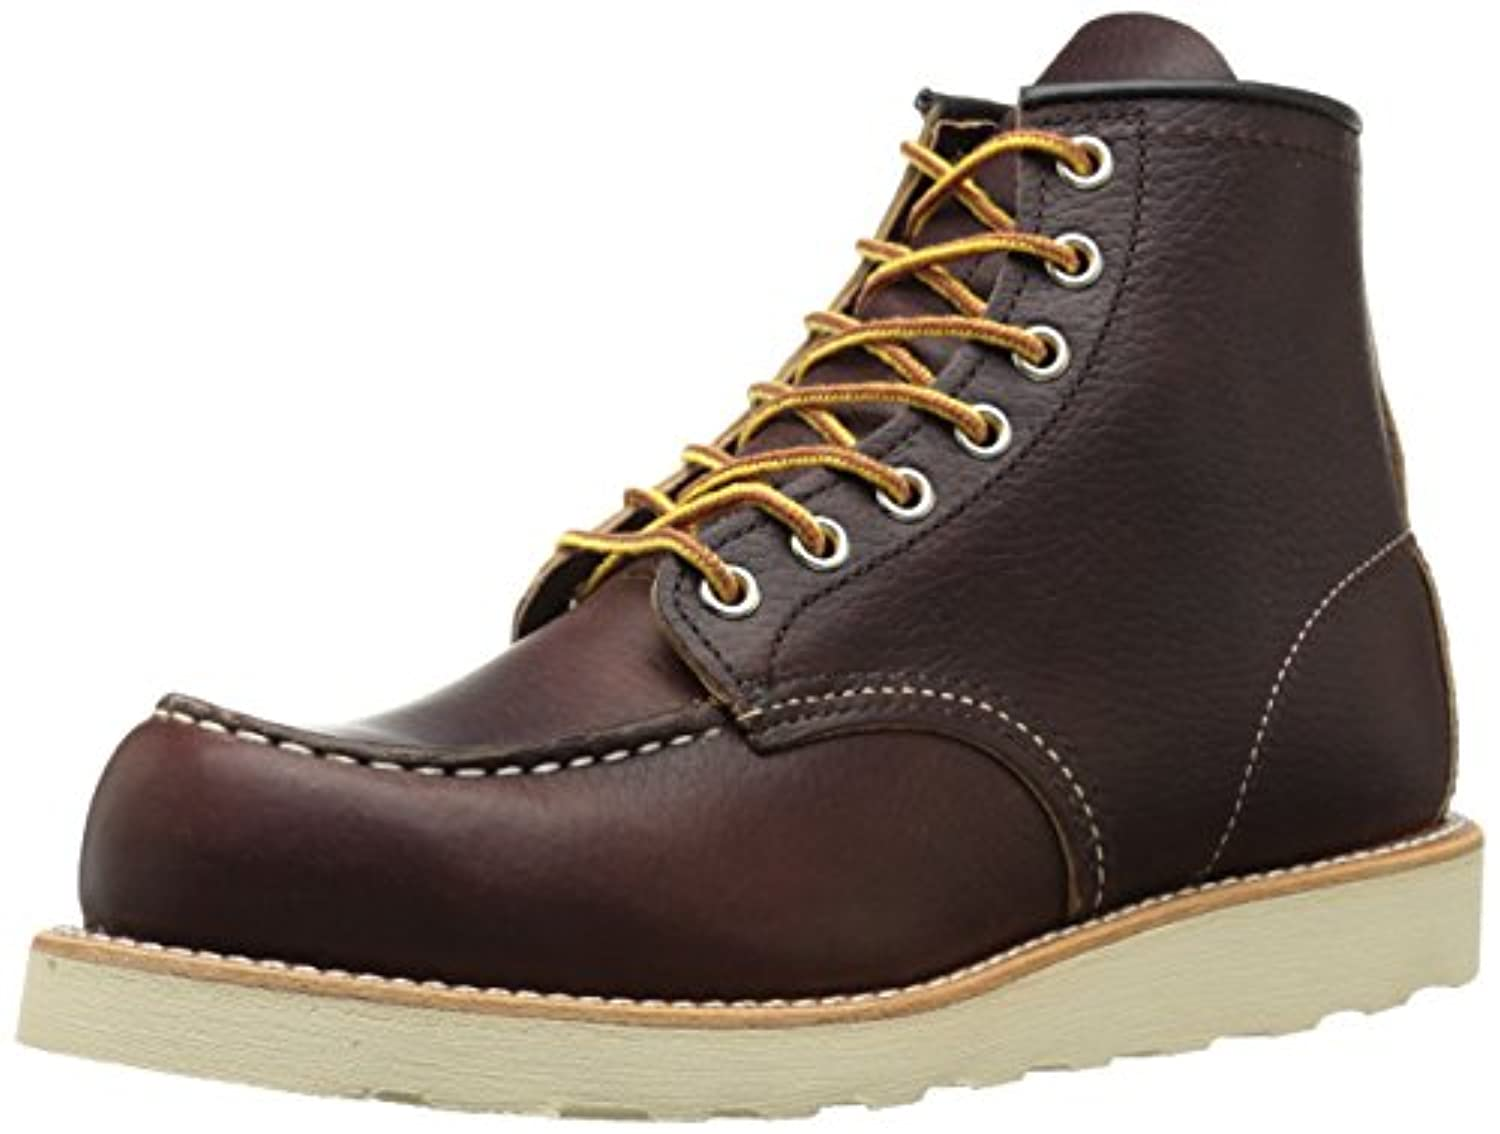 Red Wing Men's 8138 Lace-Up Briar Pit stop 8138 Lace-Up 7 UK